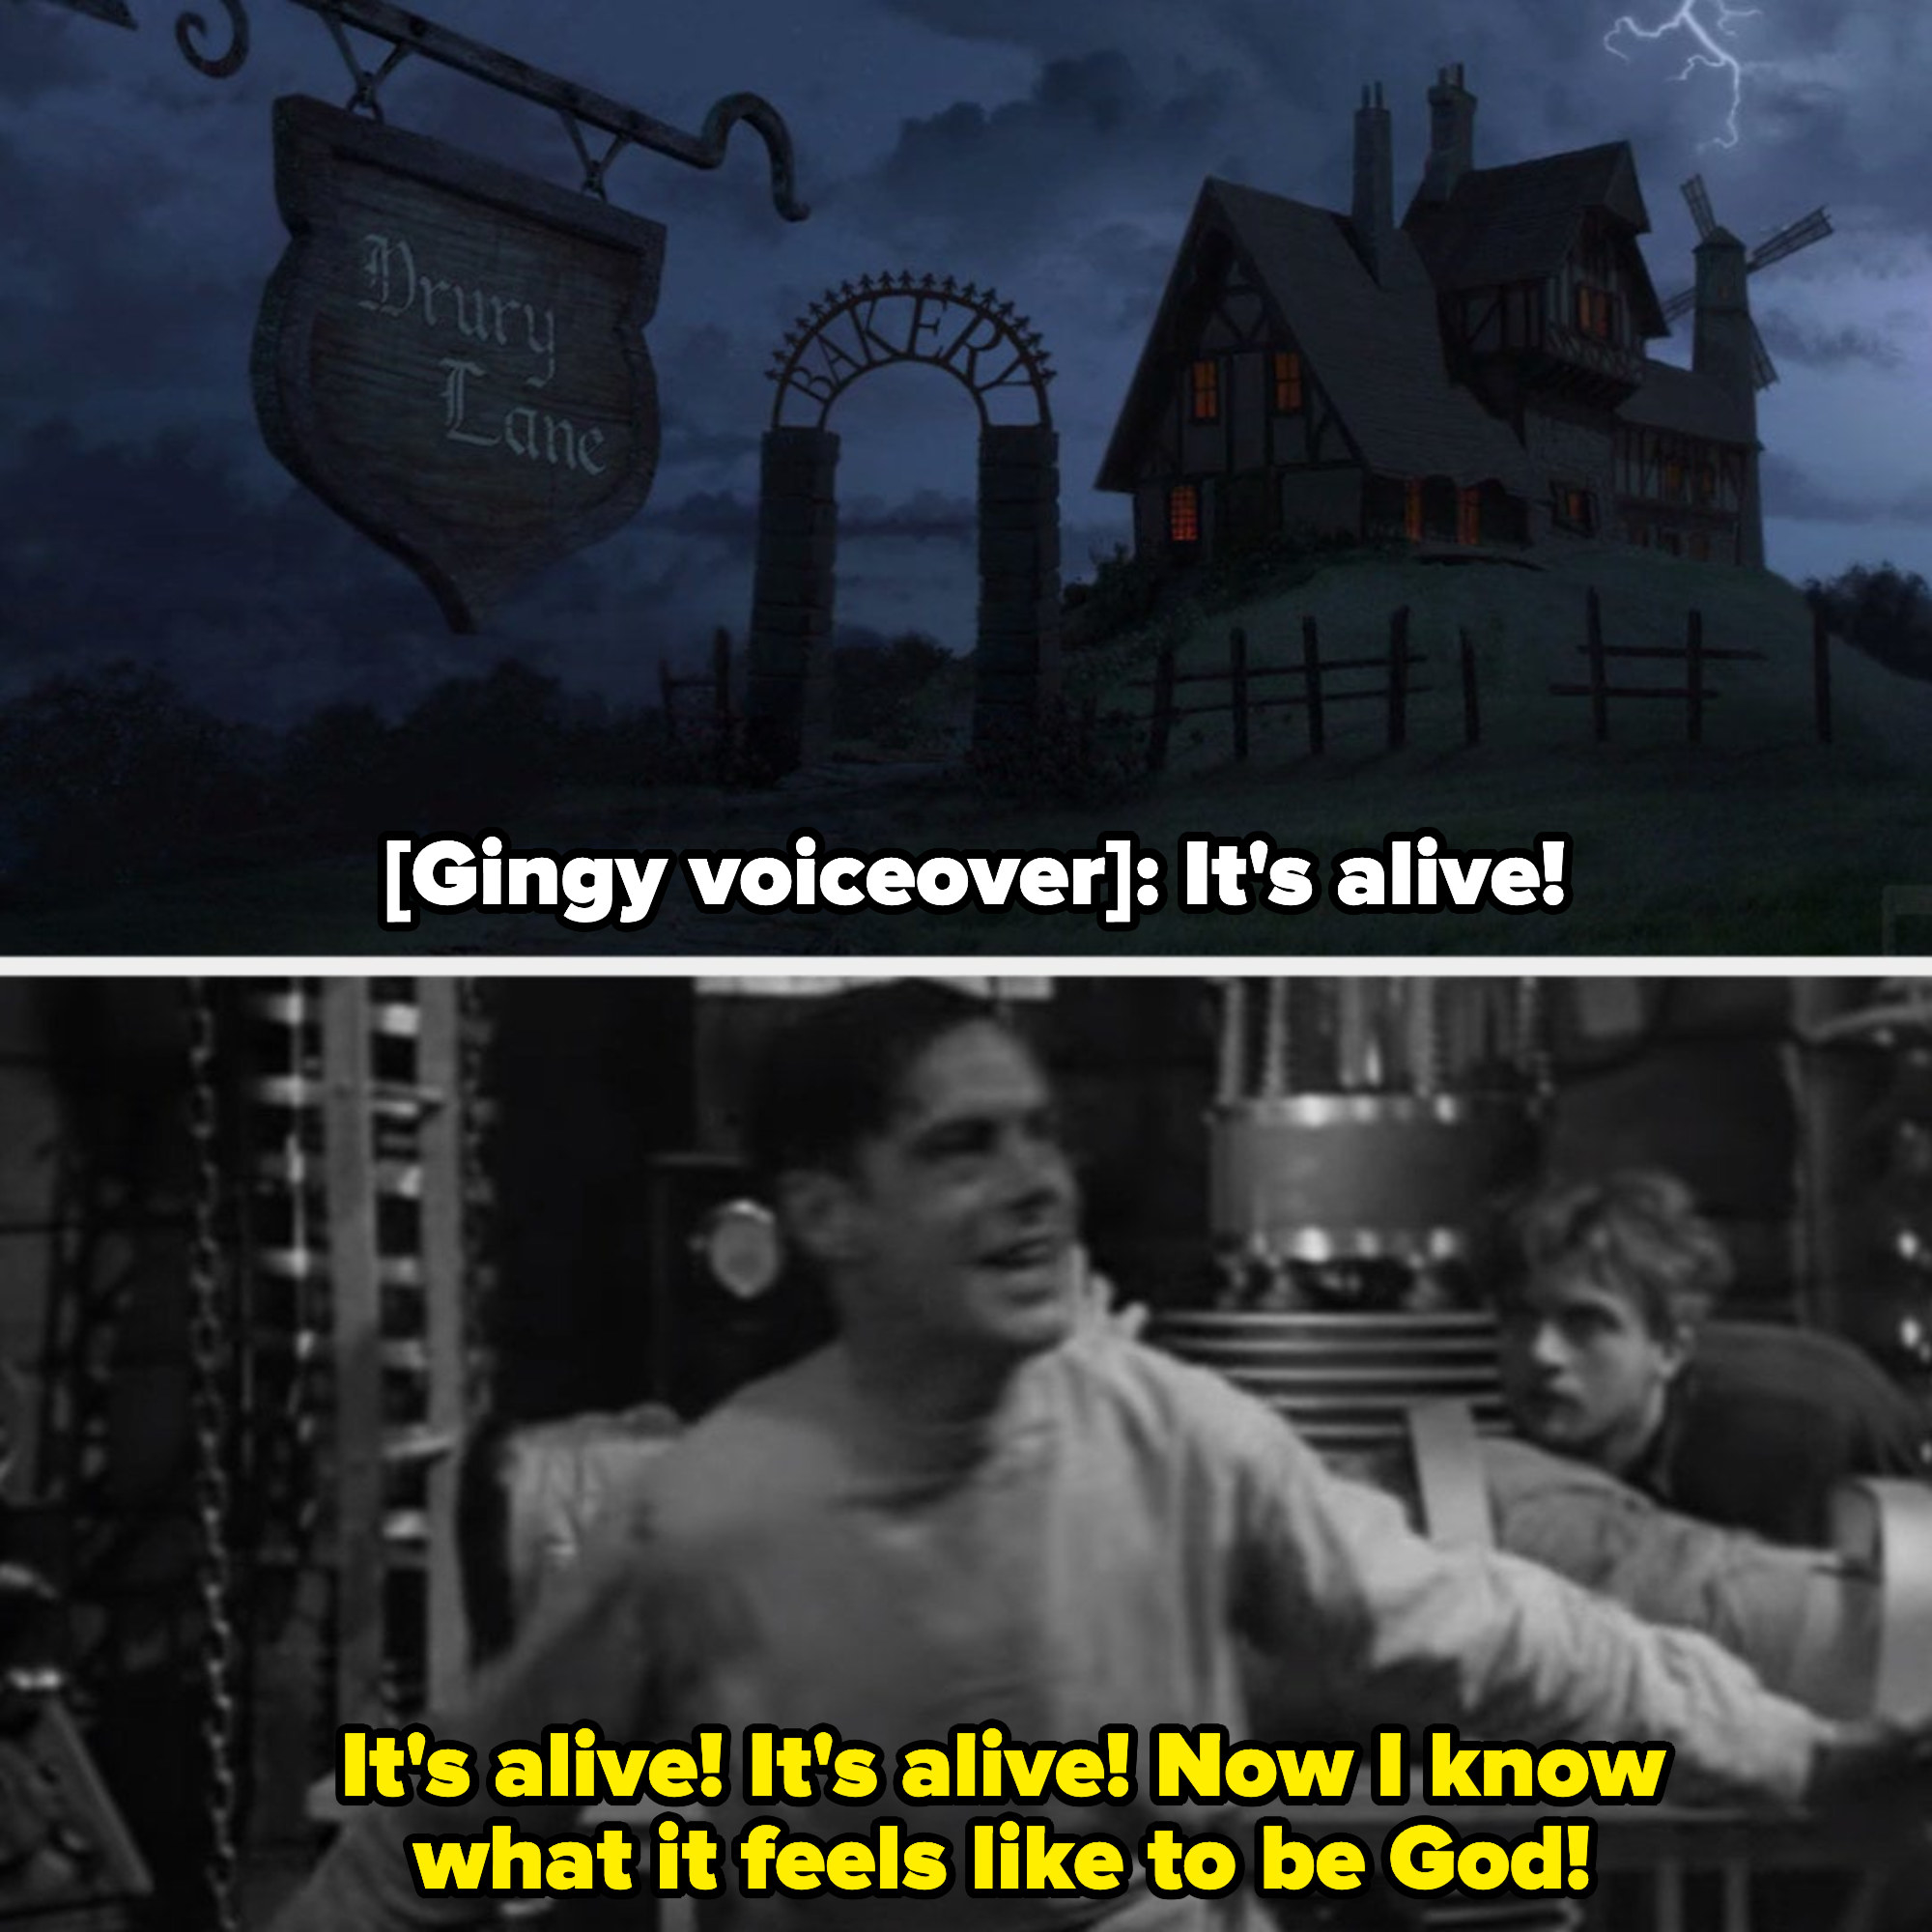 """Gingy screaming: """"It's alive!;"""" Frankenstein screaming in the lab: """"It's alive! Now I know what it feels like to be God!"""""""